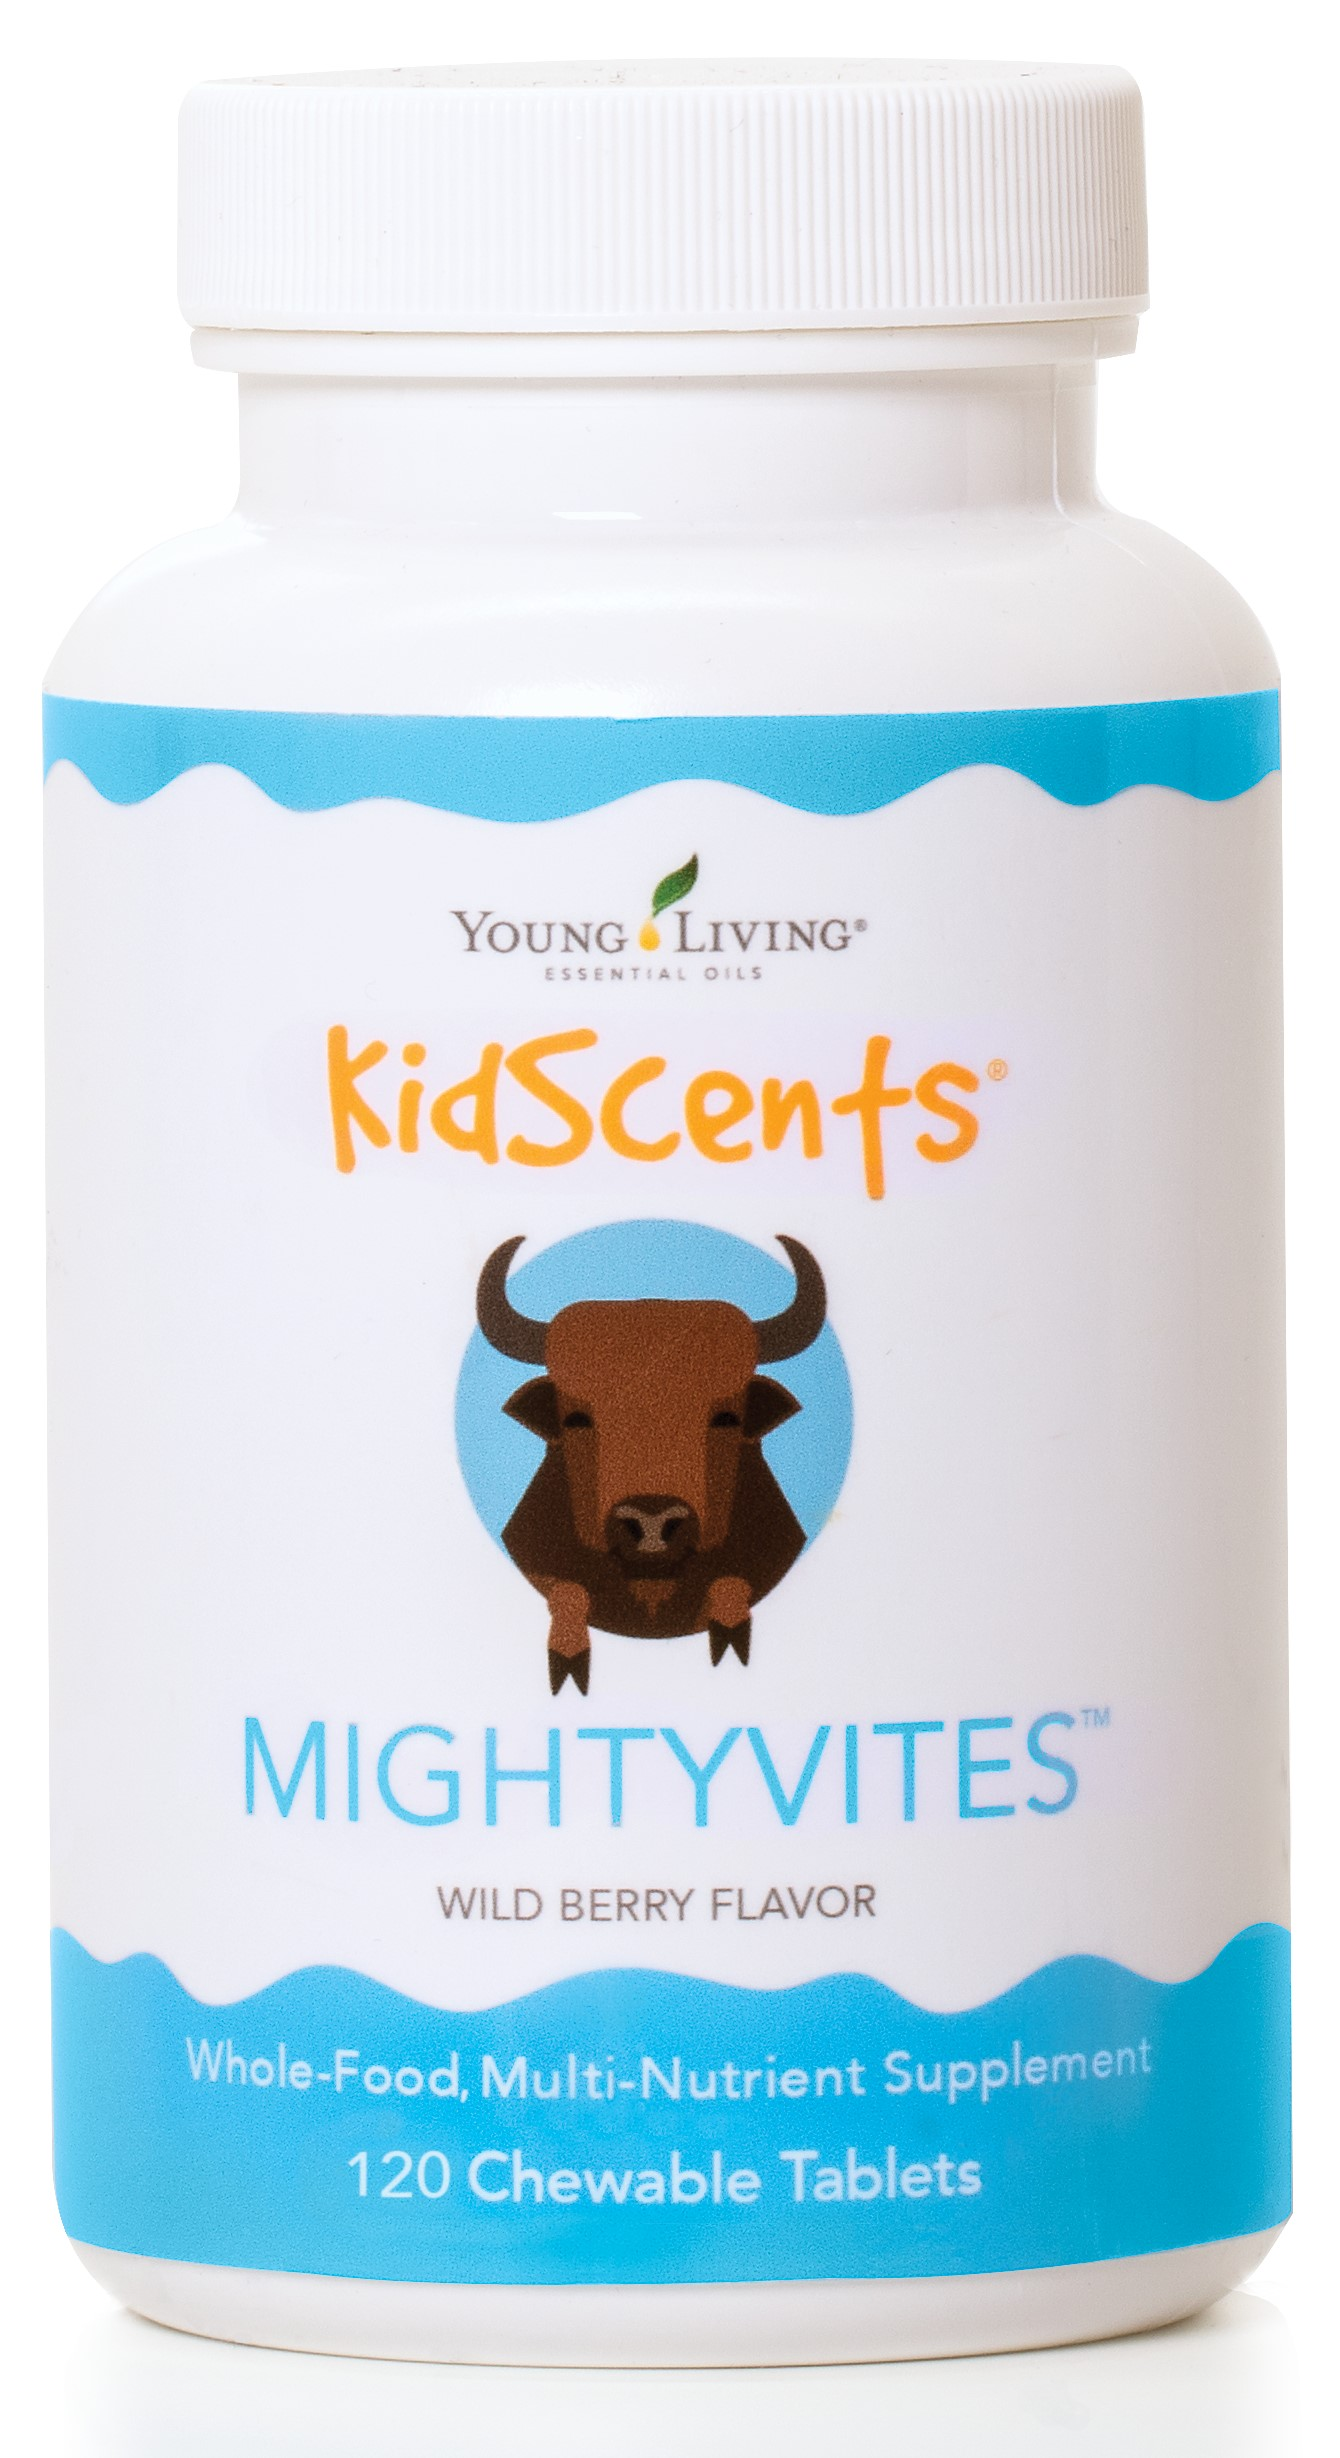 KidScents MightyVites Chewable Tablets - Young Living Essential Oils